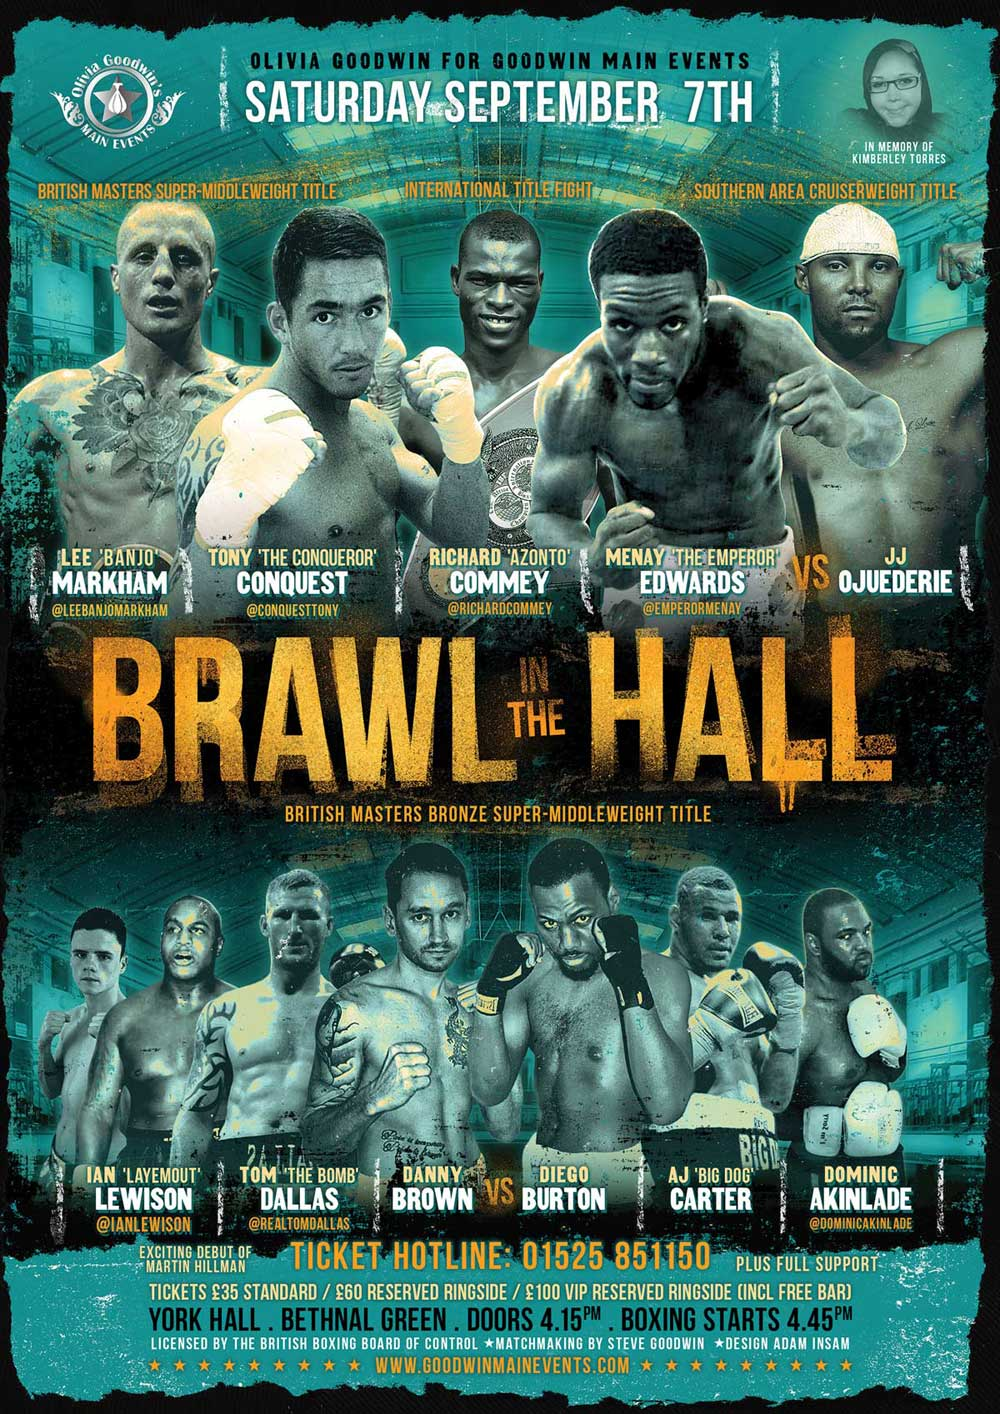 Brawl in the hall boxing poster design